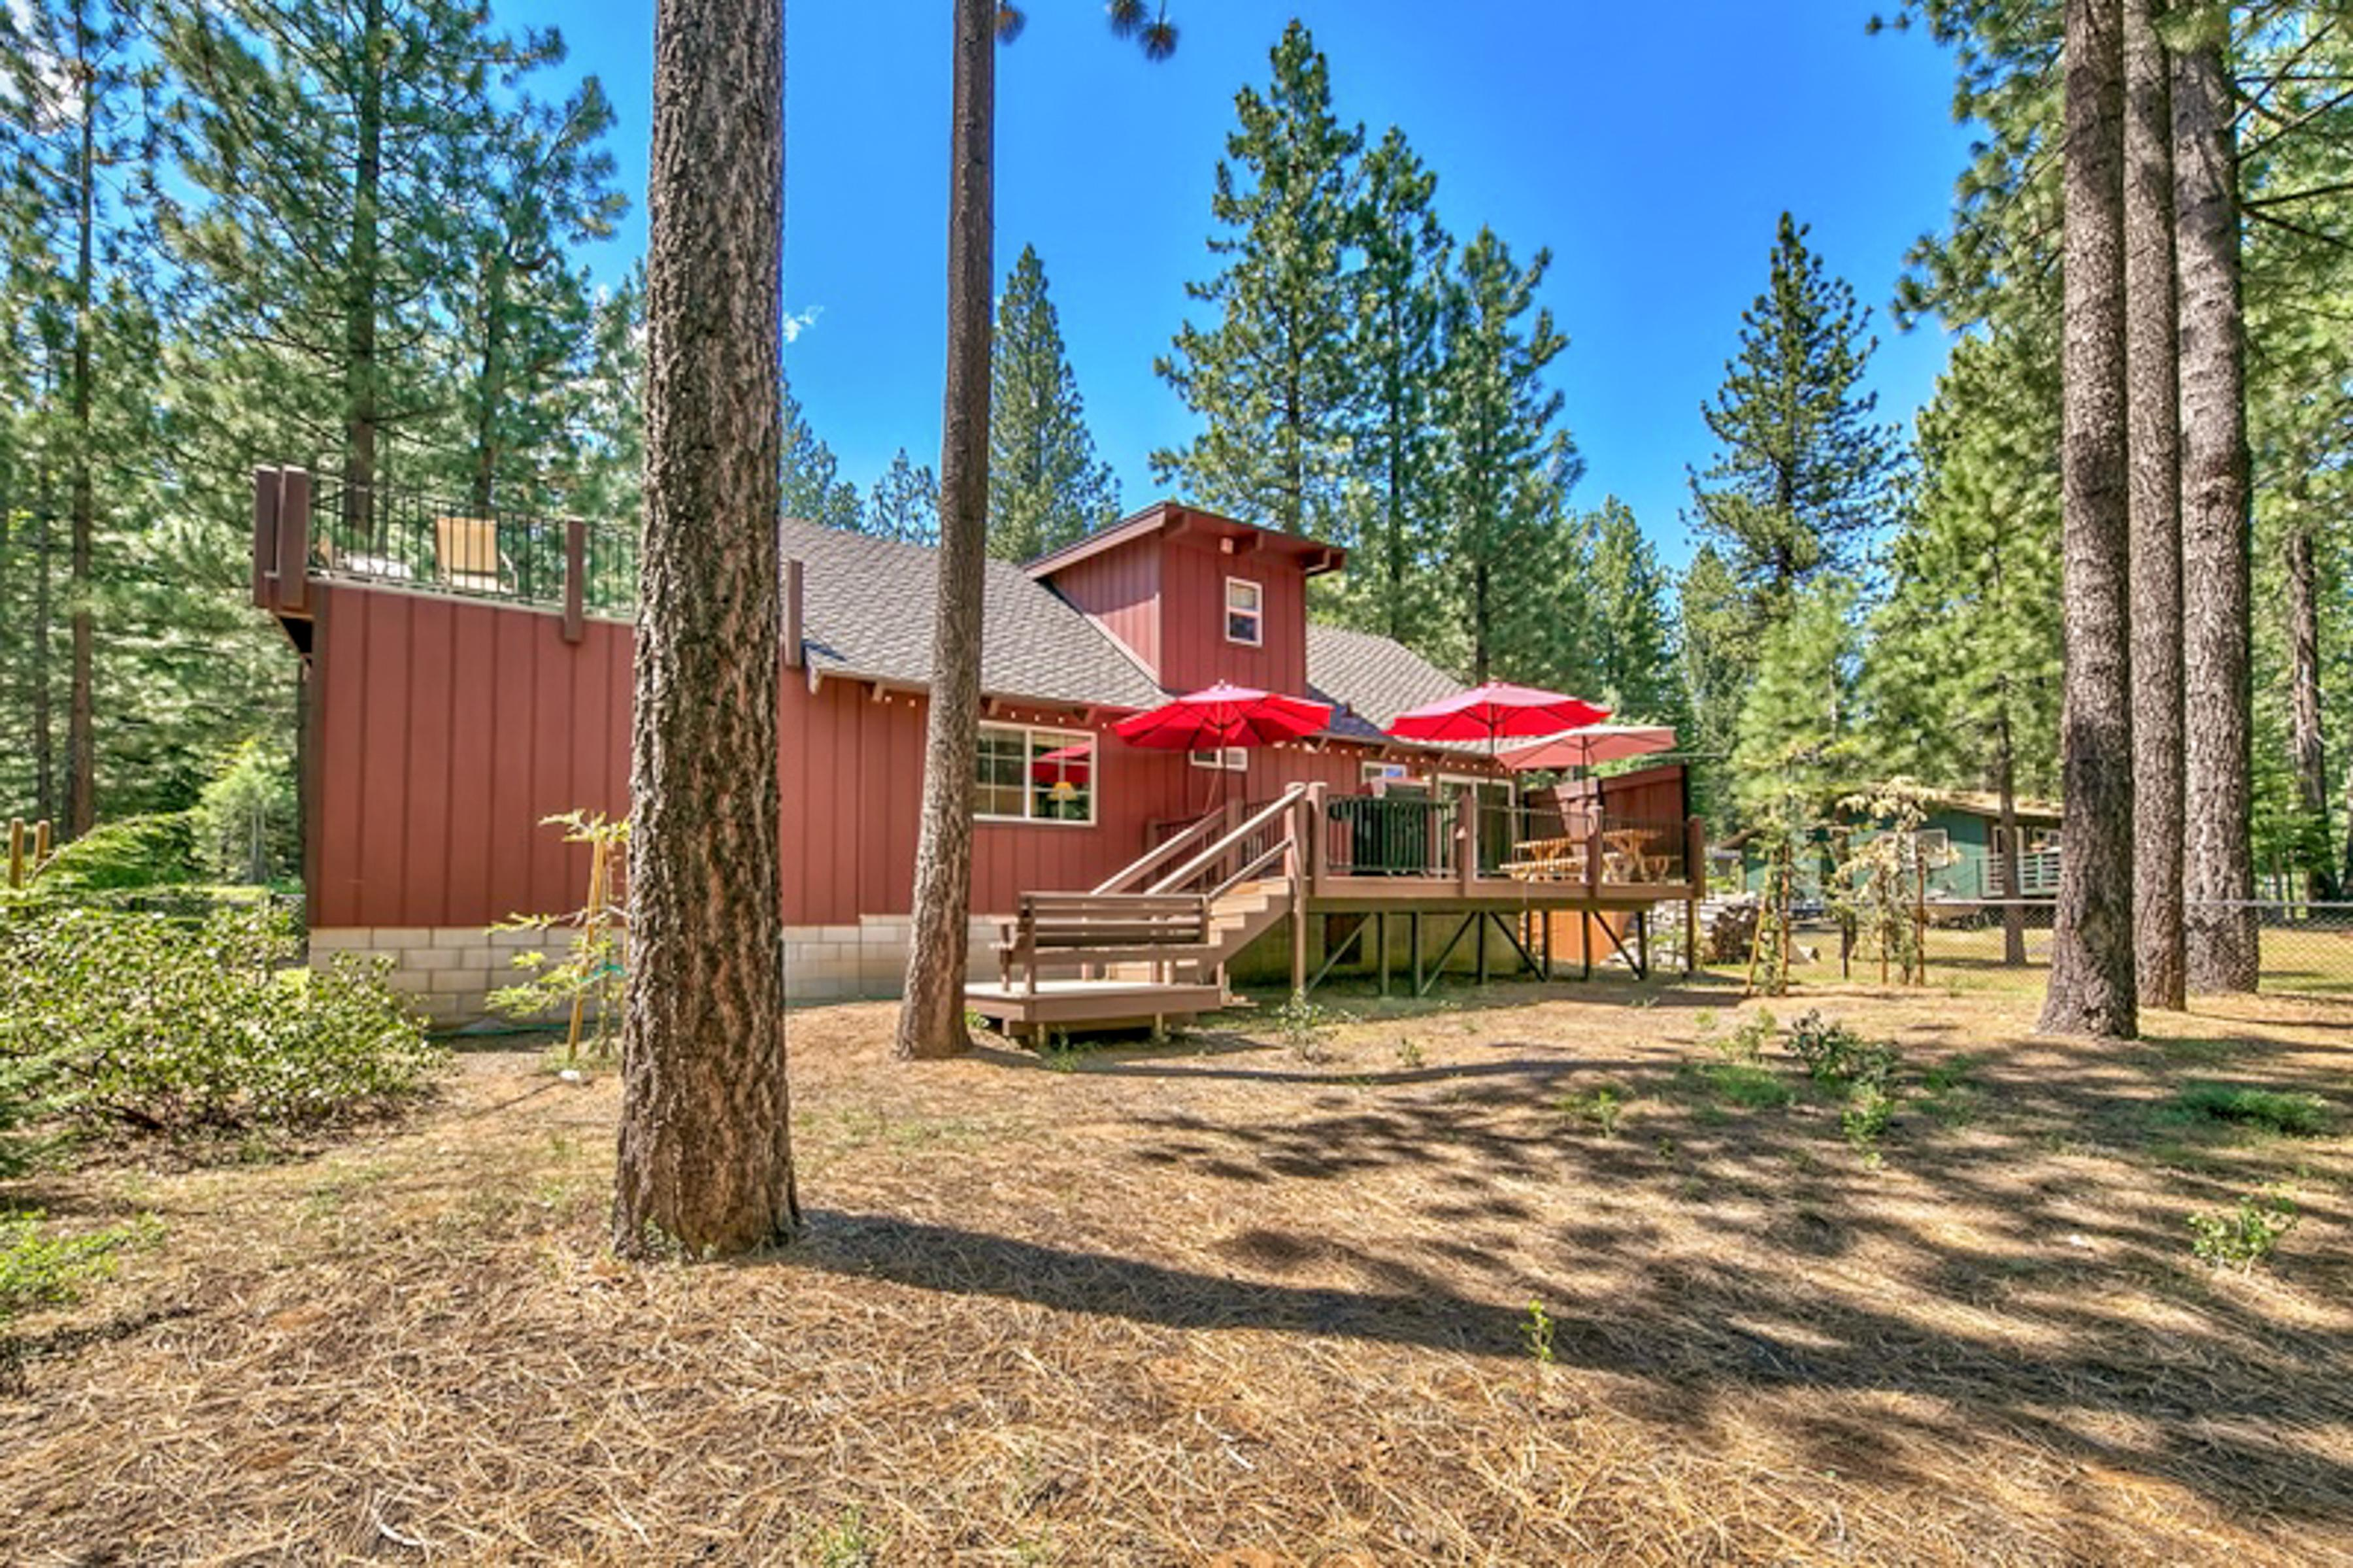 This home is located between the 3 local ski resorts: Kirkwood, Heavenly, and Sierra at Tahoe.